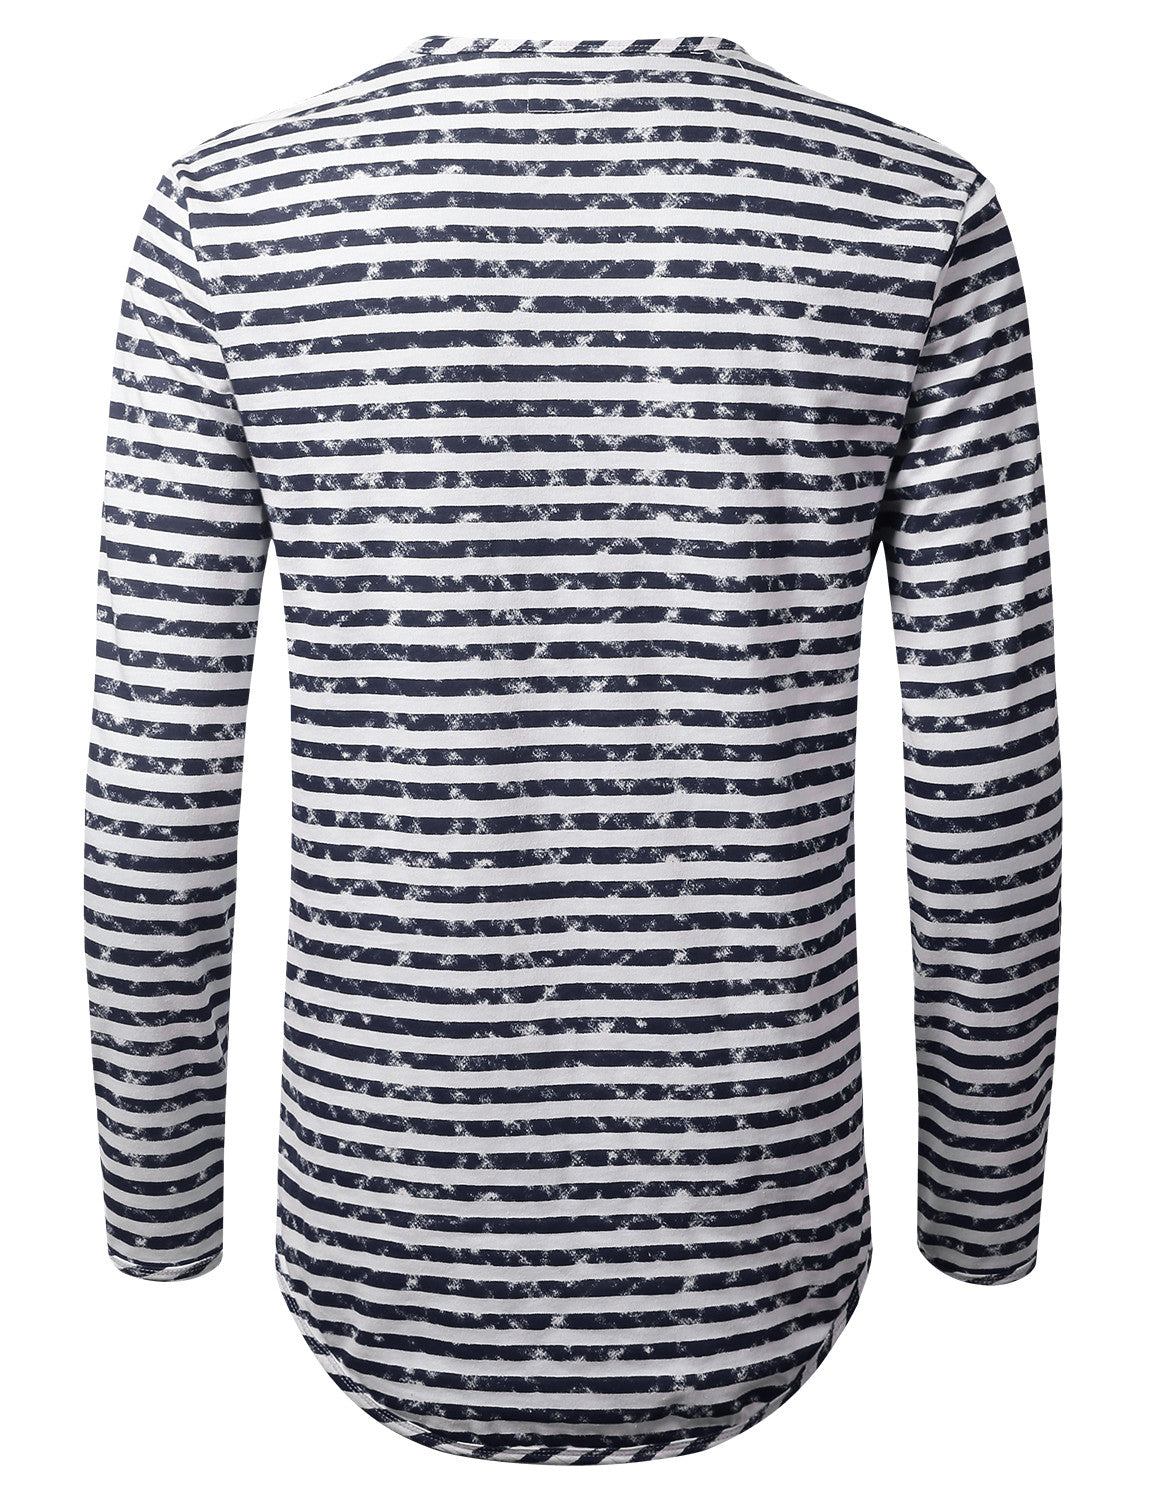 NAVY Faded Striped Long Sleeve Tshirt - URBANCREWS